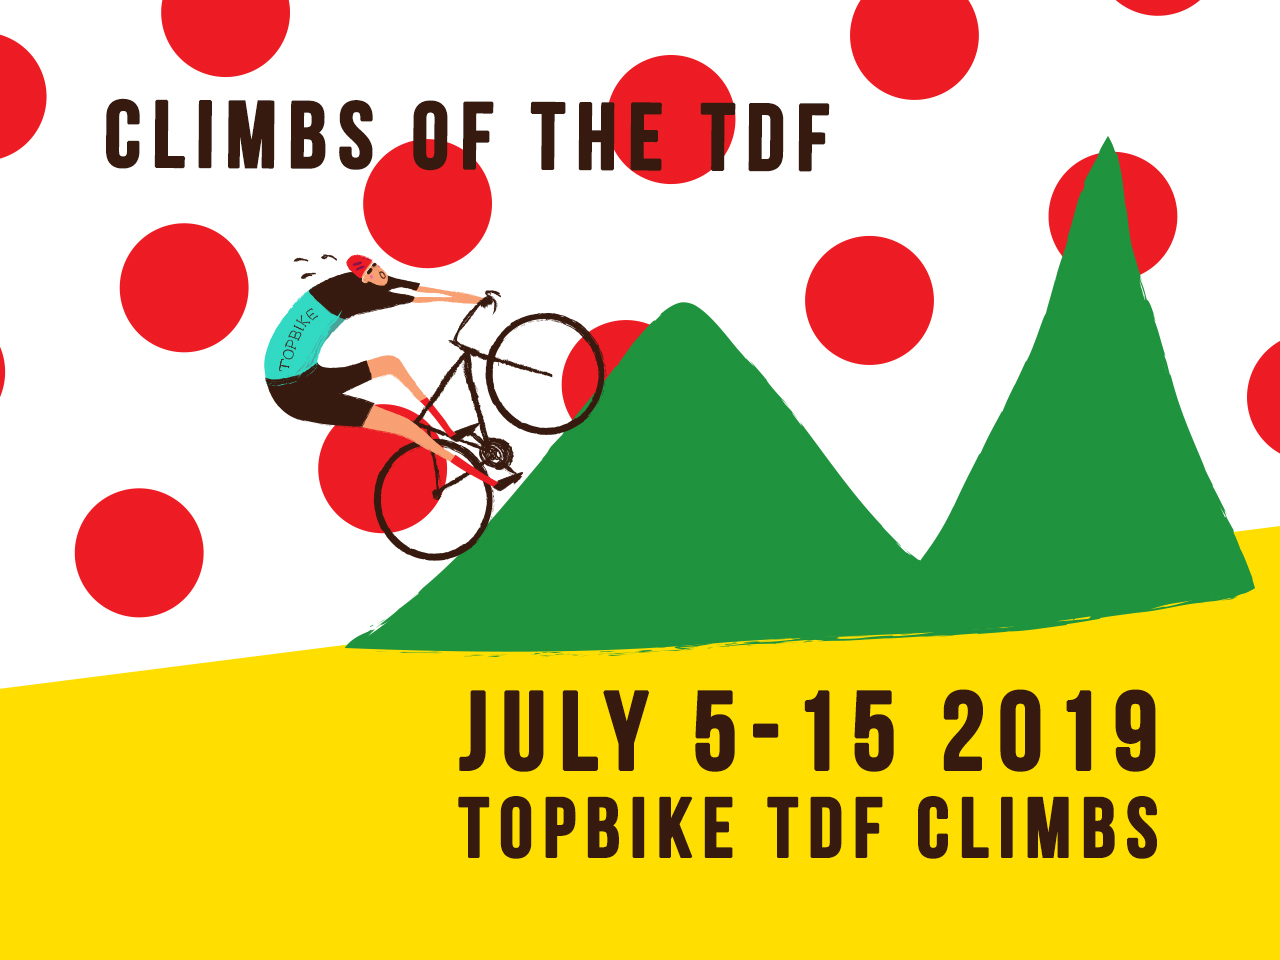 TDF Climbs- Ride the famous climbs of the Tour de France (Alps & Pyrenees) with Topbike Tours